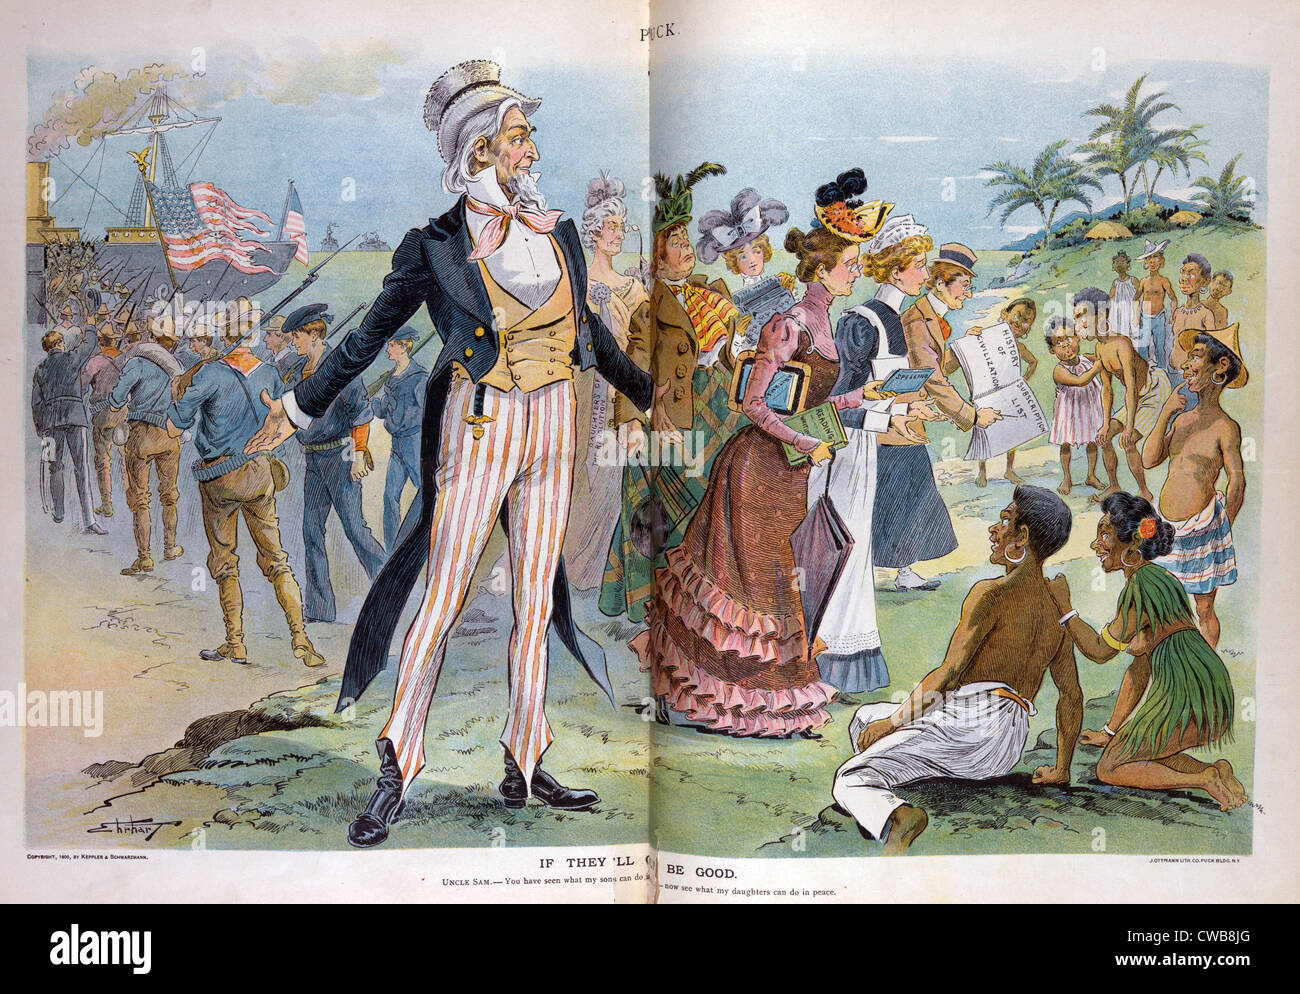 The Spanish American War. Illustration of Uncle Sam between departing American soldiers and American women arriving - Stock Image